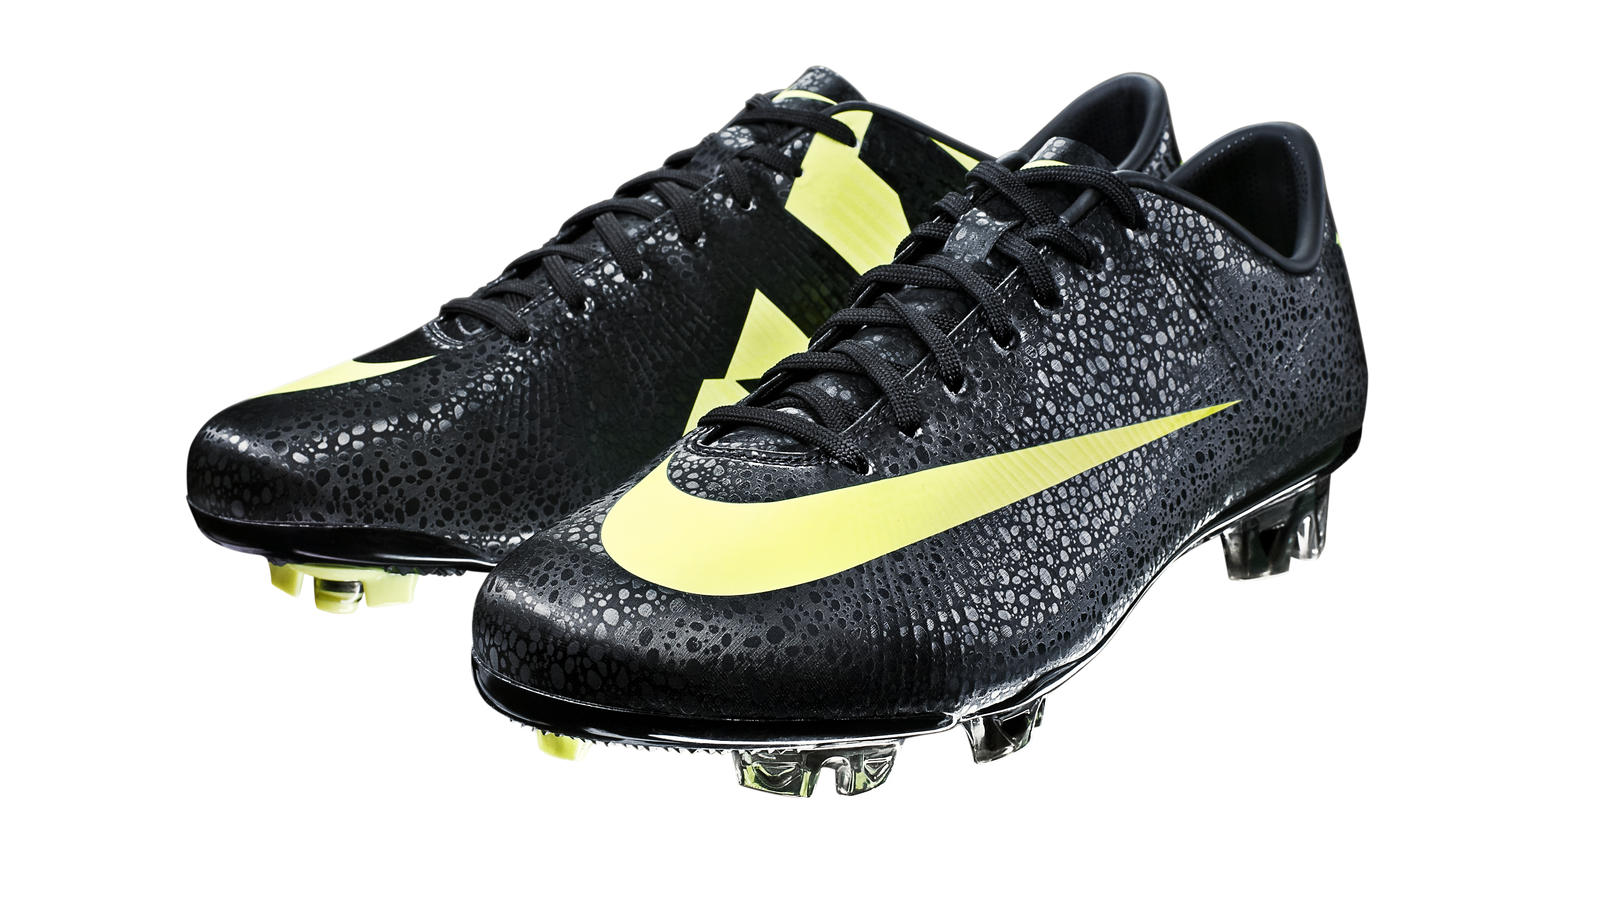 M31_NIKE _VAPOR_SUPERFLY 35274_White